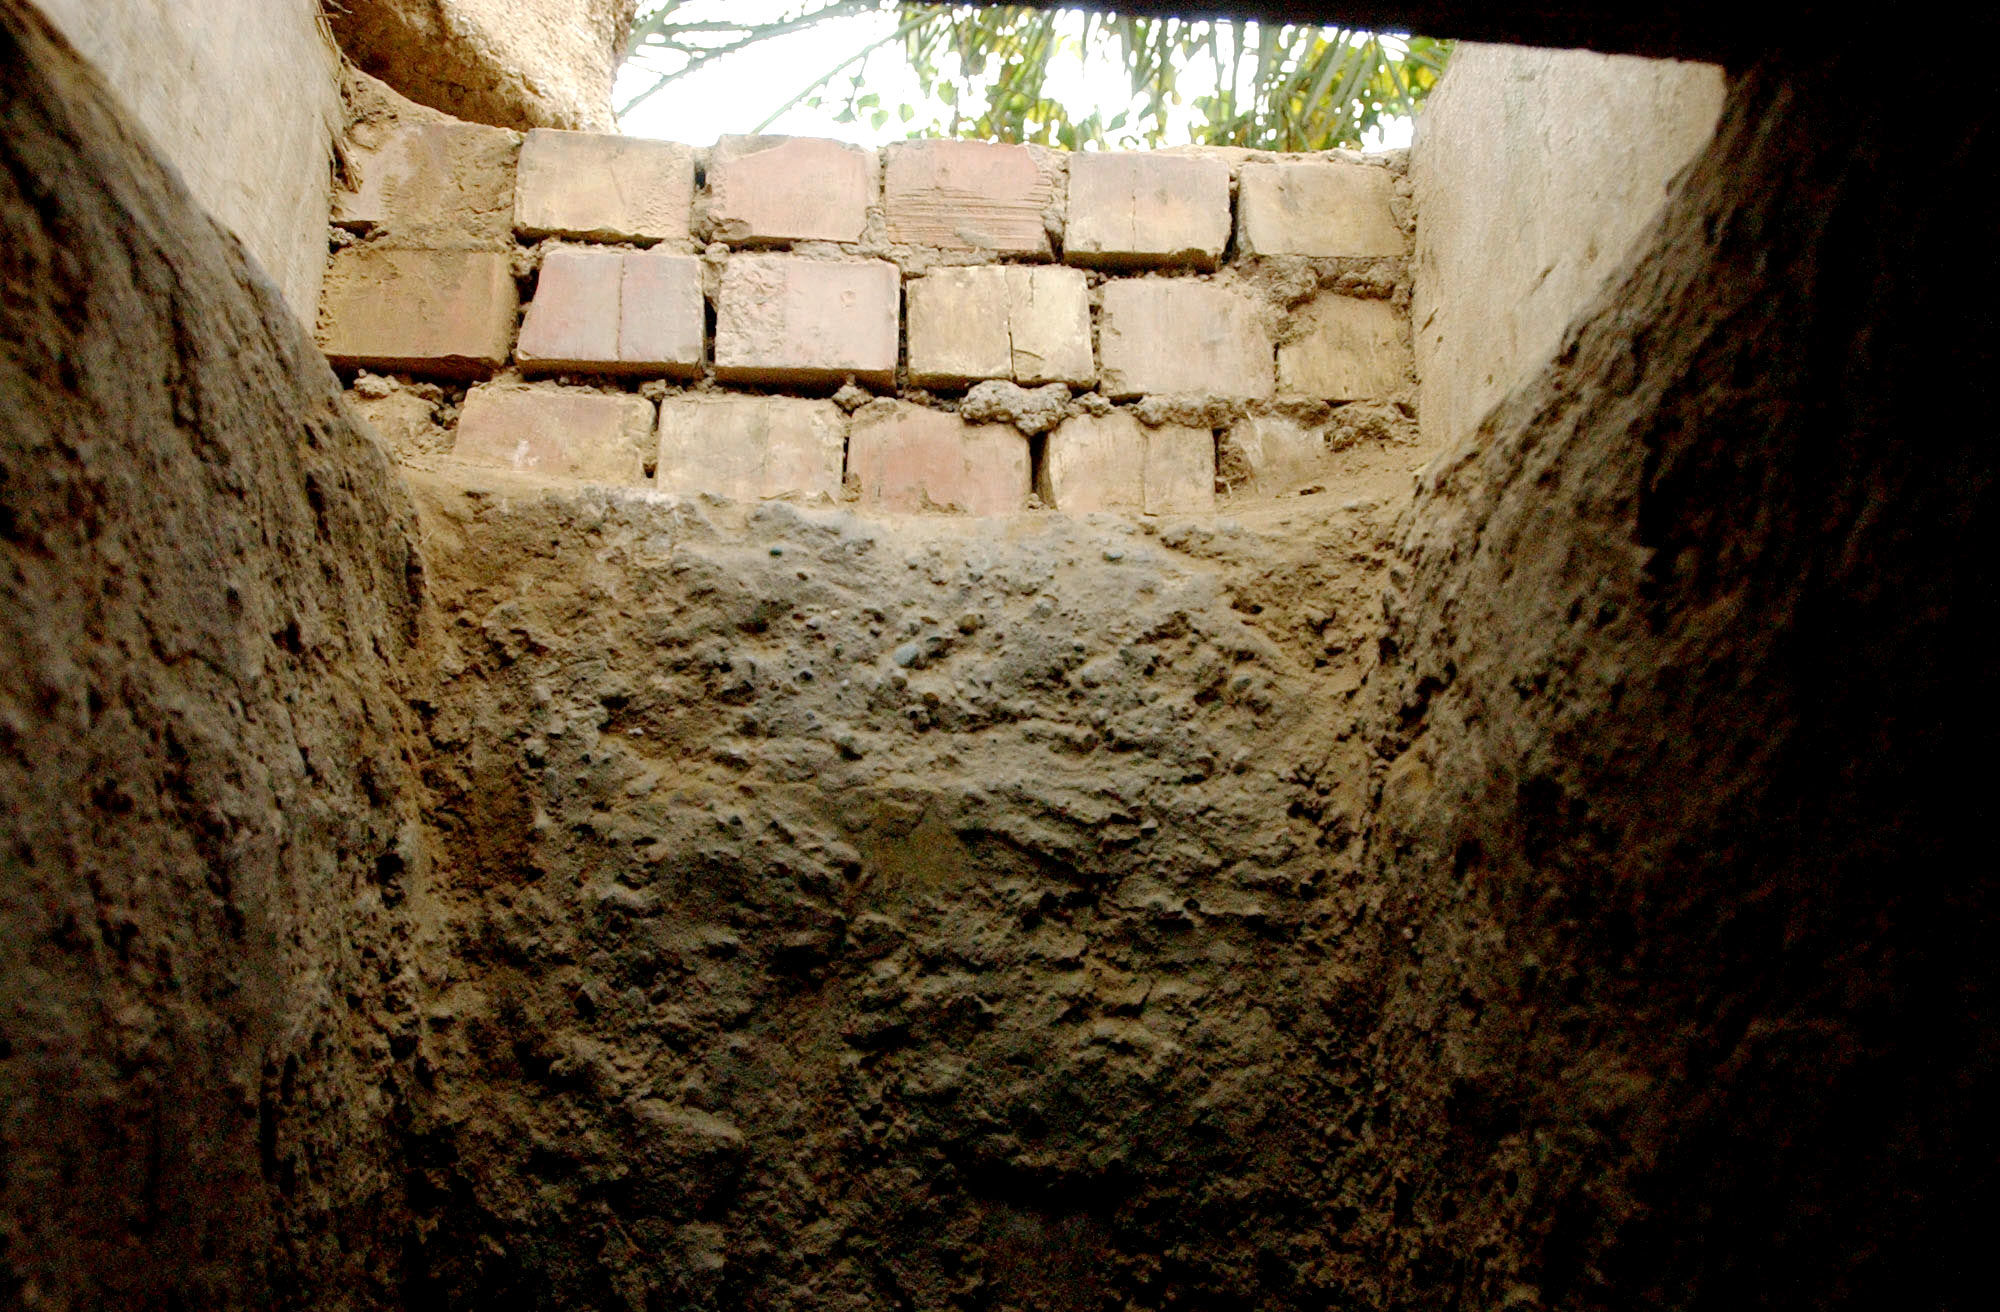 "The hole entrance measured 2-by-2 1/2 feet where deposed Iraqi President Saddam Hussein was caught in a hole on a farm house property in Al Dawr, near his hometown of Tikrit. ""I am Saddam Hussein. I am the President of Iraq and I am willing to negotiate,"" were Mr. Hussein's words to U.S. Special Forces when he was caught in the hole. ""President Bush sends his regards,"" greeted the soldier, according to the military press officer."